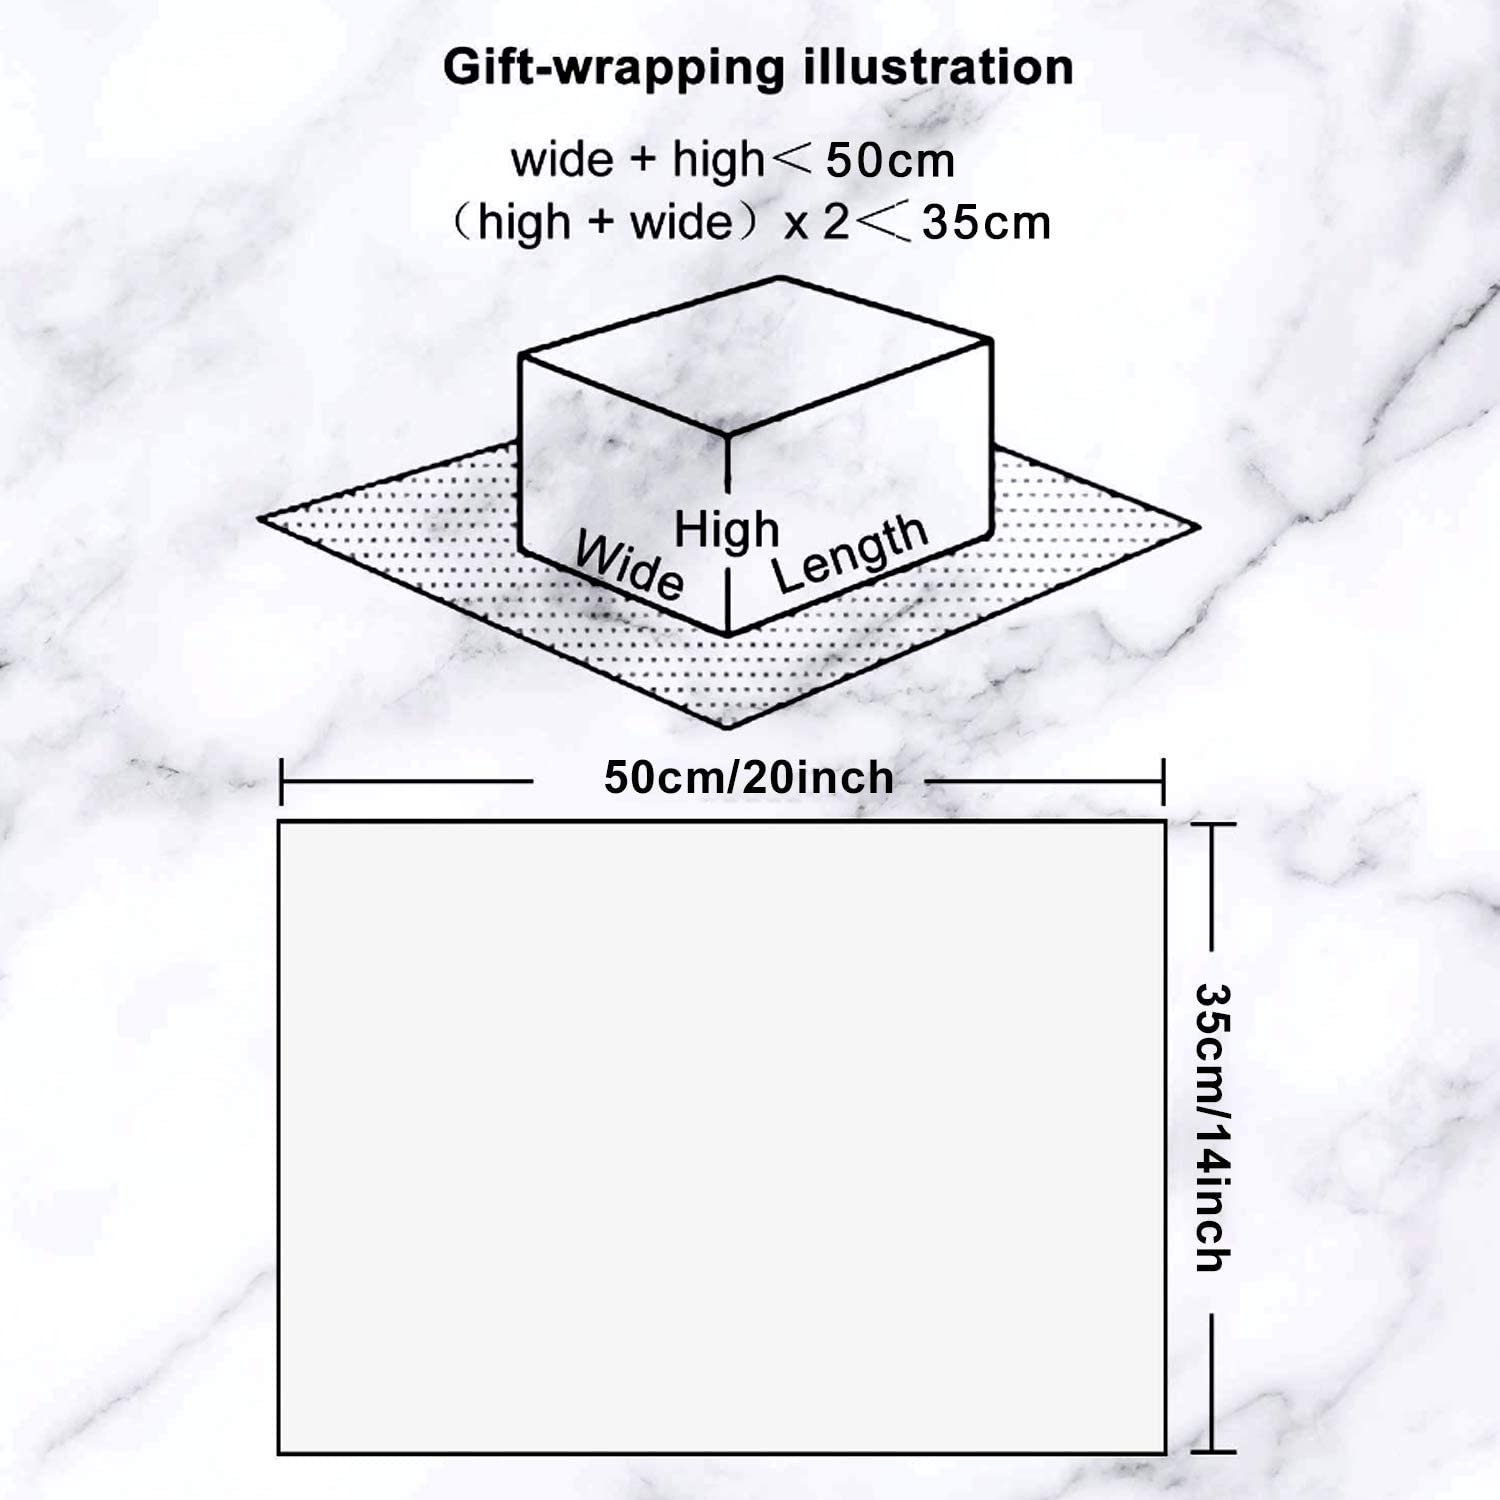 Weddings Arts Crafts 100 Sheets Metallic Gift Wrapping Paper for Home Showers DIY Whaline Rose Gold Tissue Paper Bulk Kitchen Birthday Party